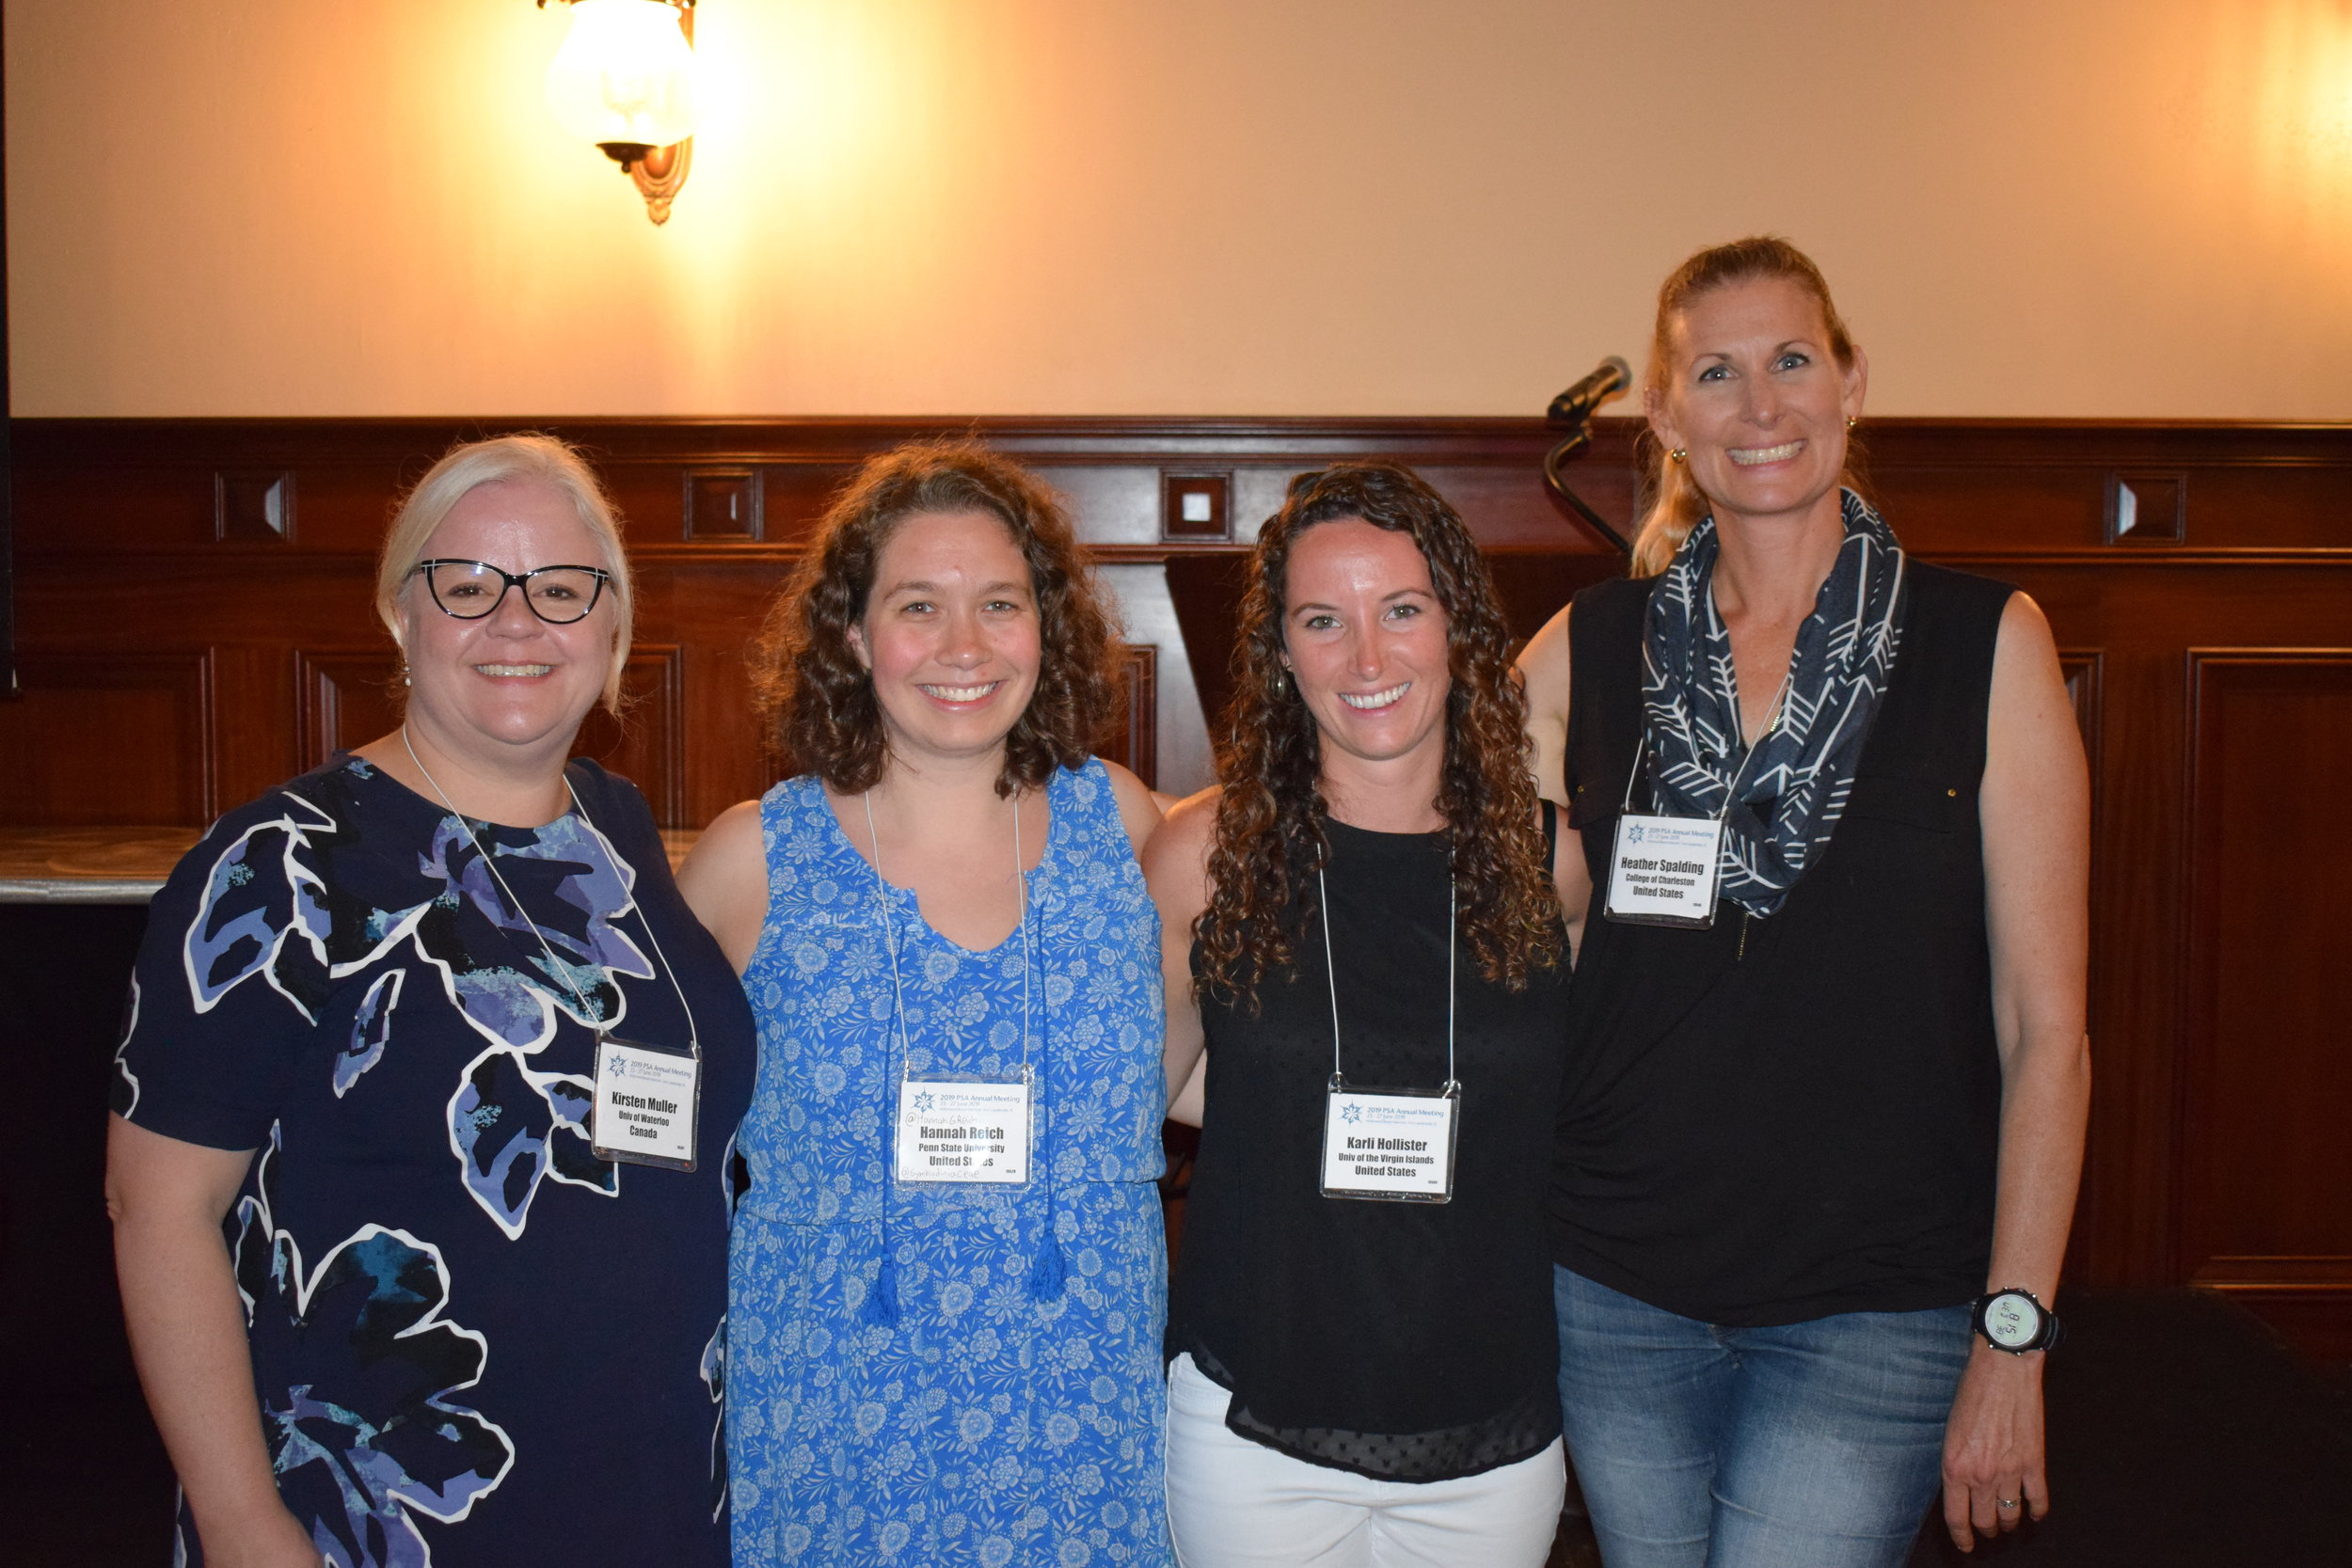 2019 Bold Award Winner, Hanna Reich (second from left) and Lewin Award Winner, Karli Hollister (second from right), along with PSA President Kirsten Müller (left) and Student Awards Committee Chair Heather Spalding (right)